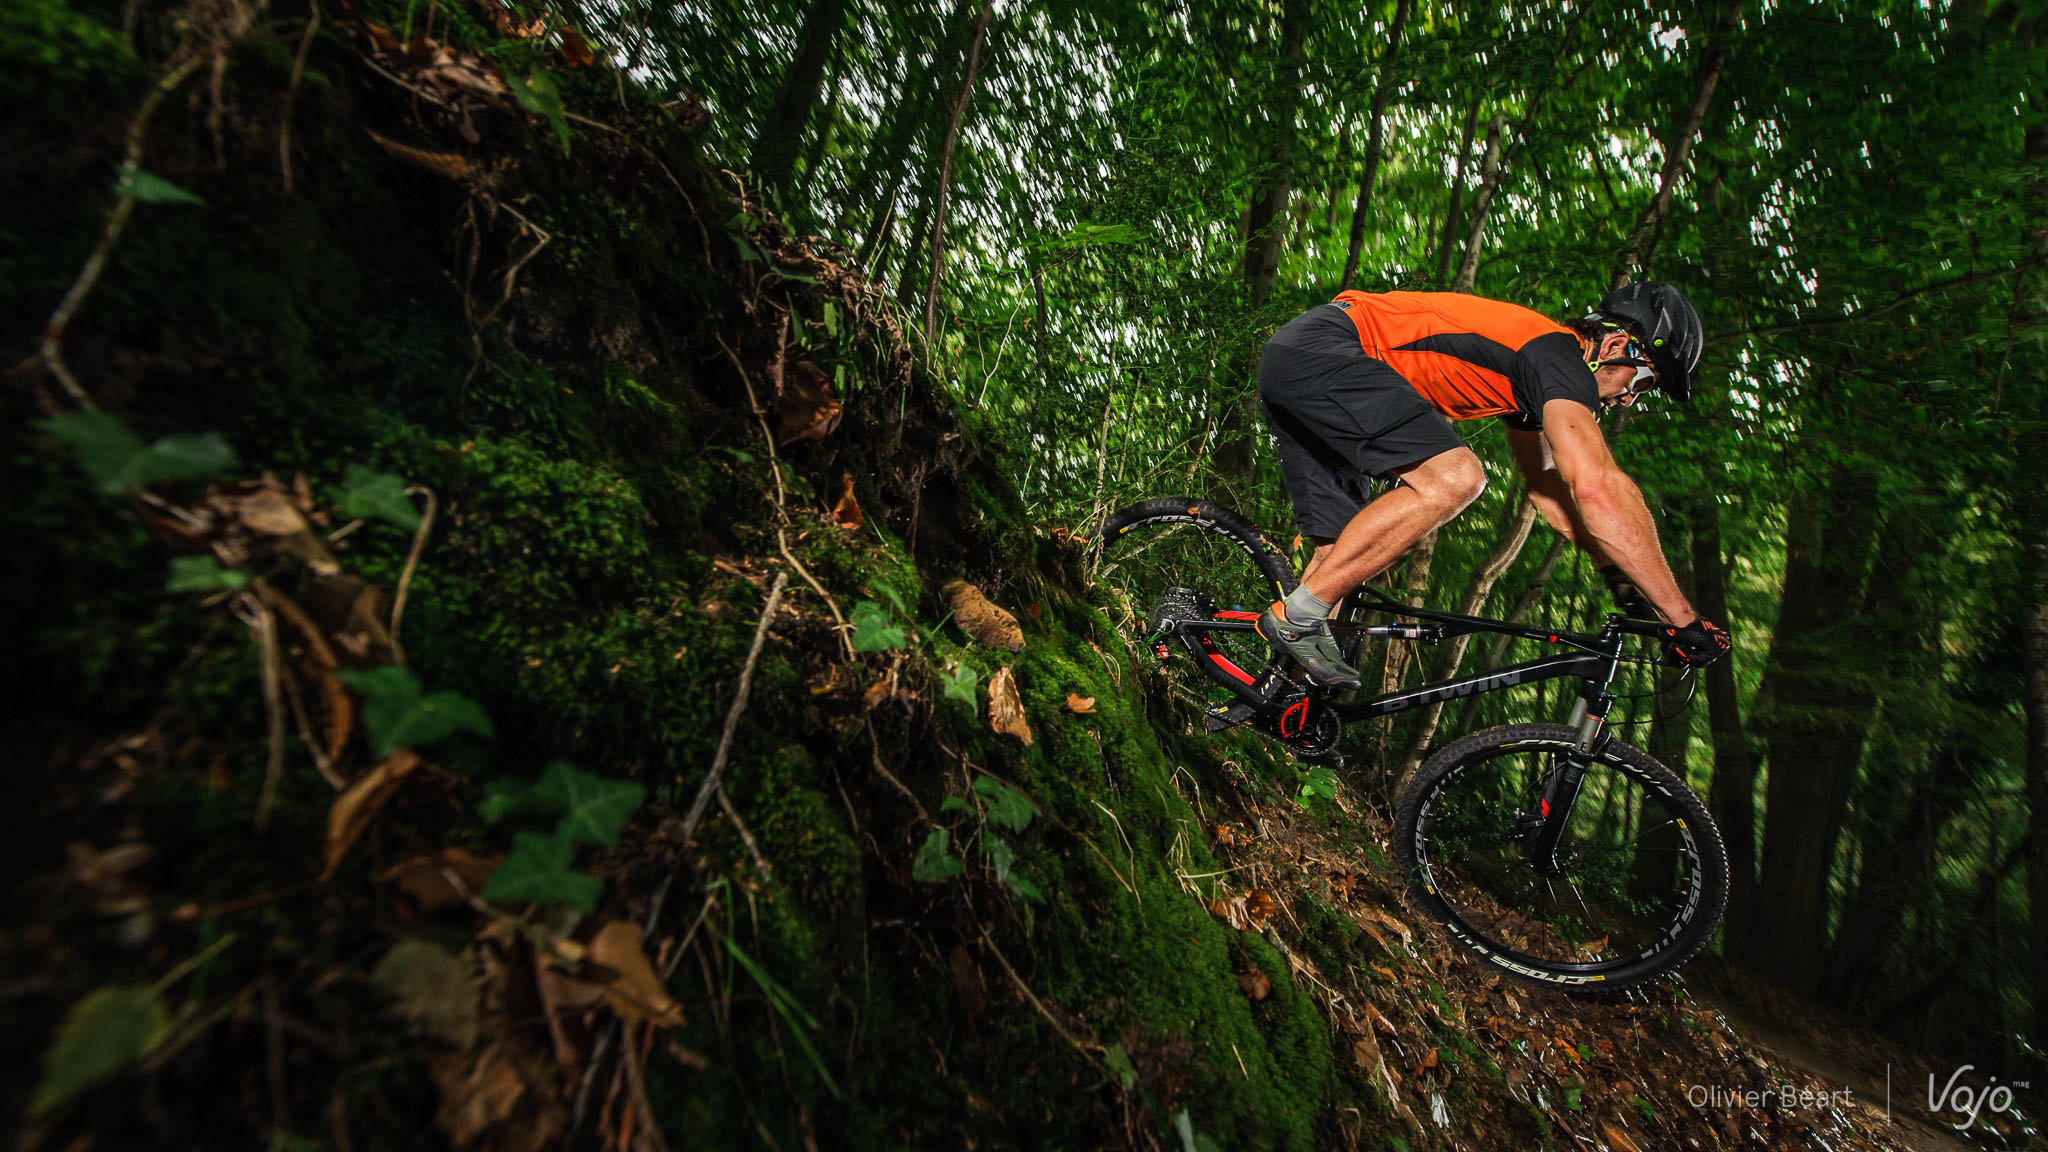 BTwin_Rafal_900s_Action_Copyright_OBeart_VojoMag-6